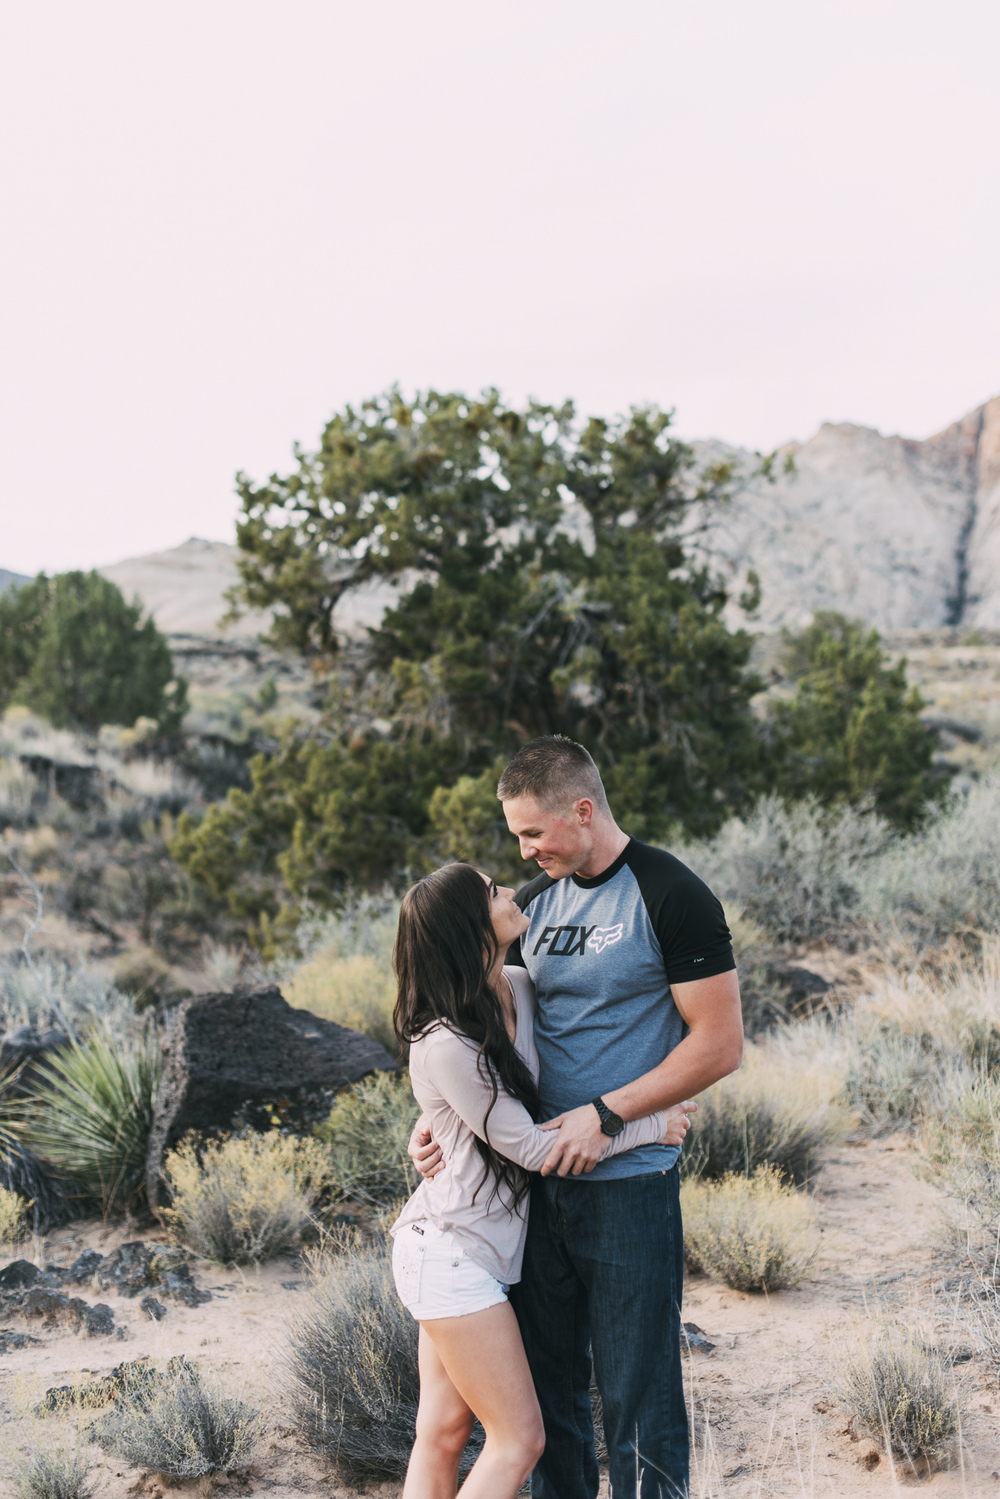 050416KELSEY & RUSTIN ENGAGEMENTS - ST. GEORGE LAS VEGAS PHOTOGRAPHER - DEBI RAE PHOTOGRAPHY-65.jpg